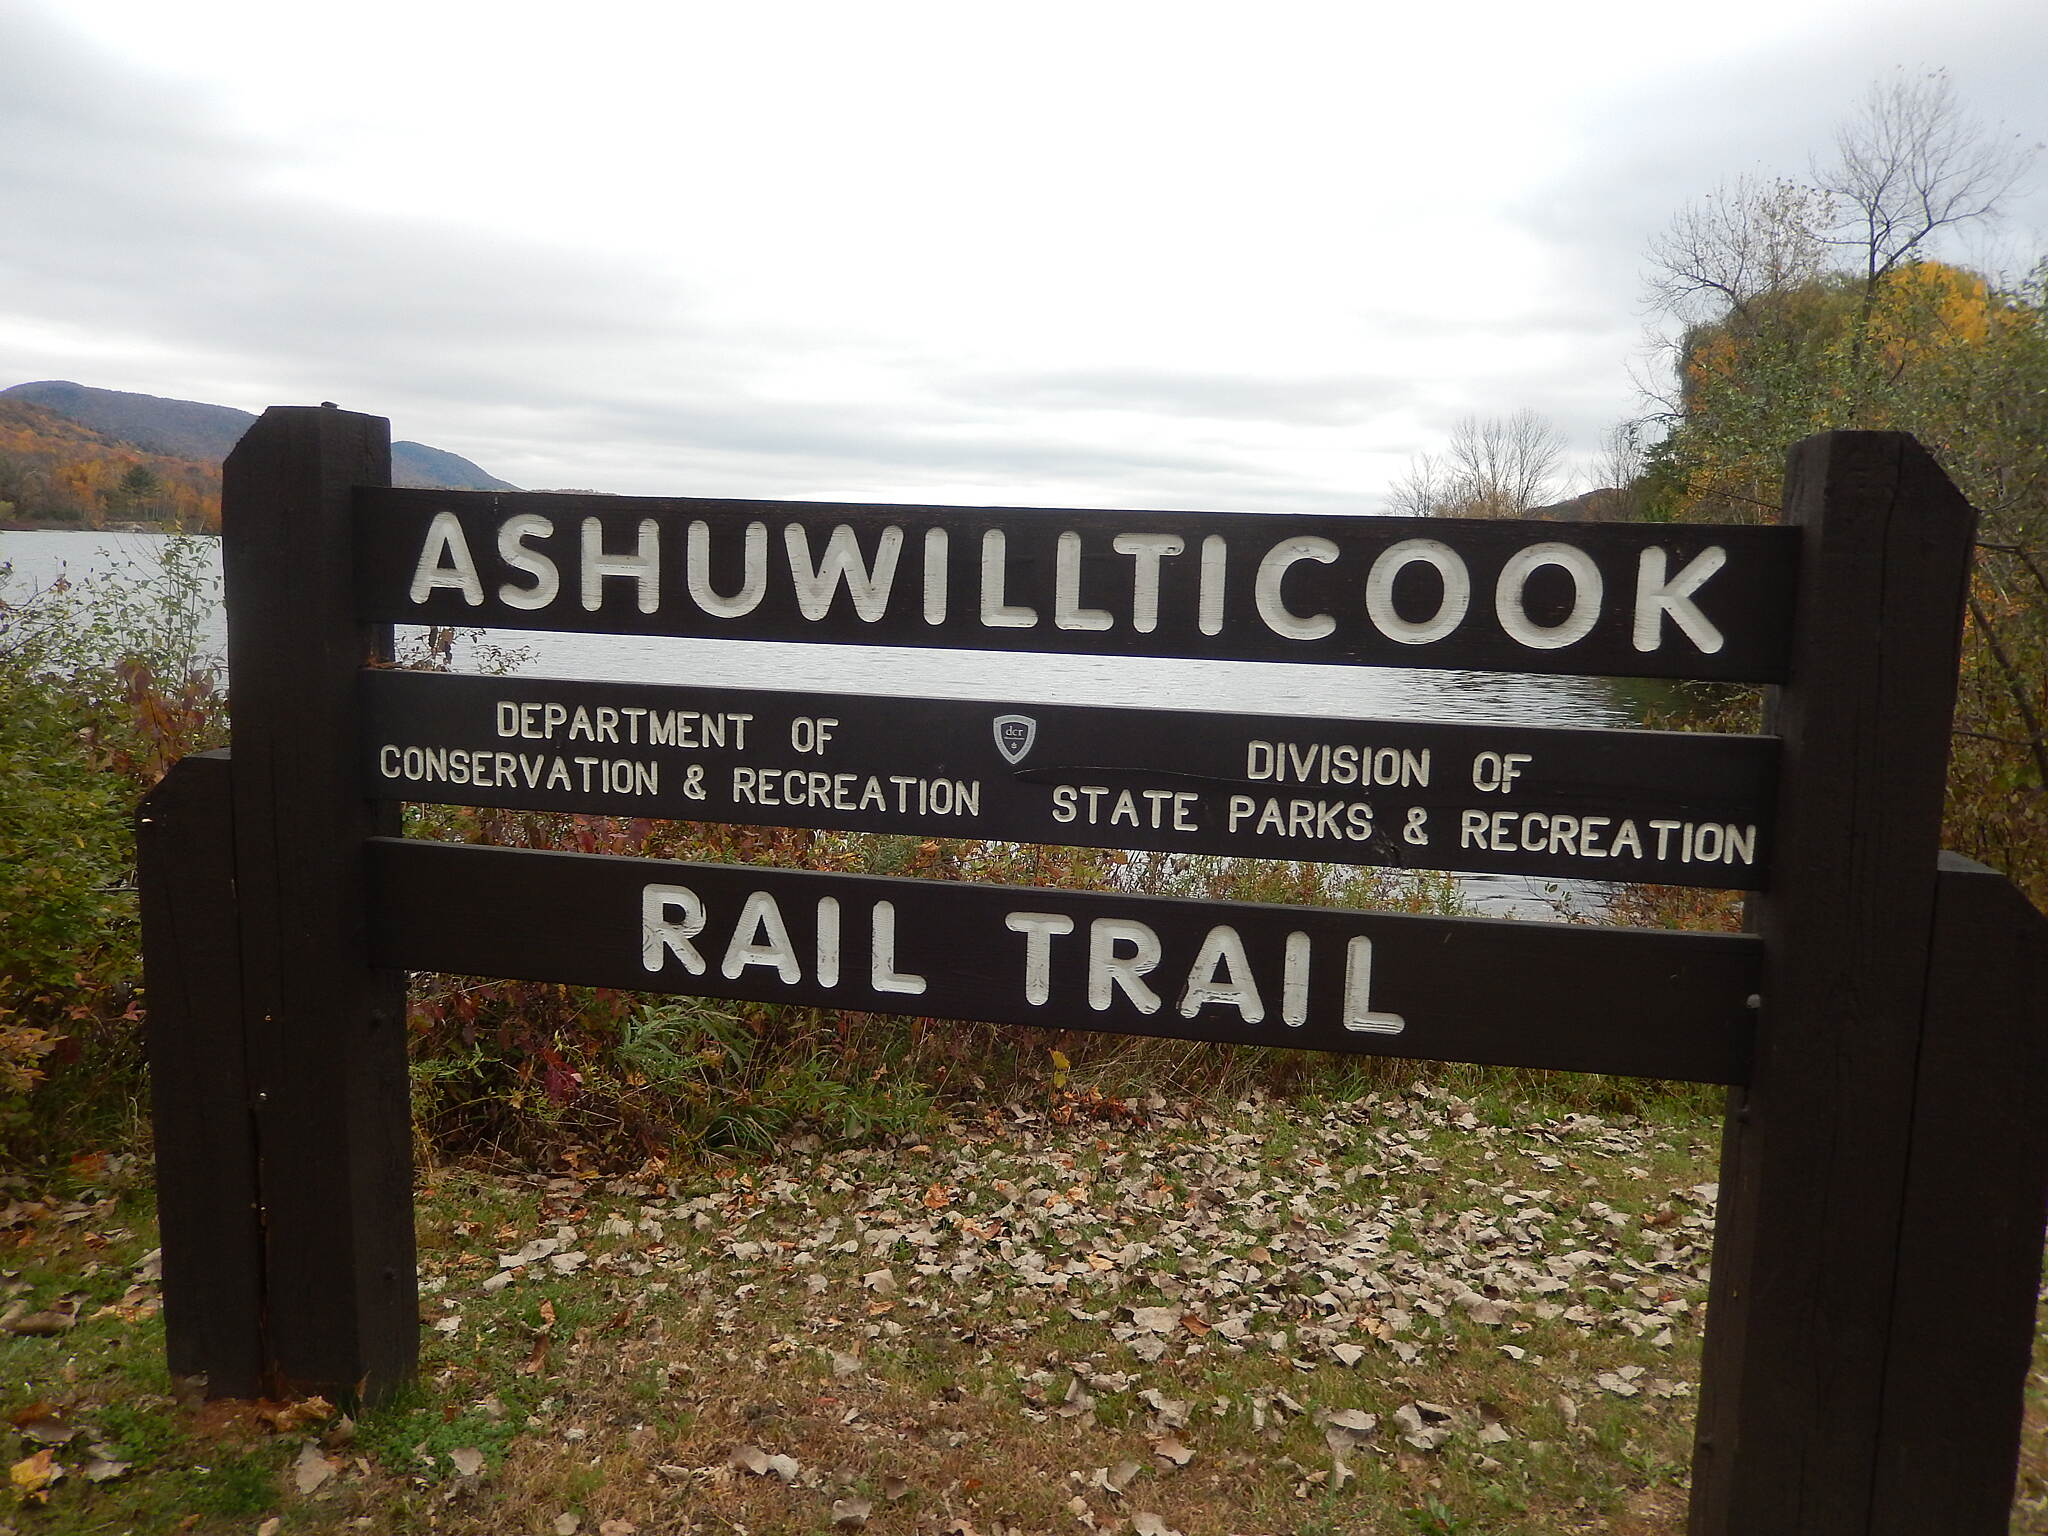 Ashuwillticook Rail Trail ASHUWILLTICOOK RAIL TRAIL IT WAS WORTH TRAVELING 2 HOURS 38 MINUTES TO GET HERE!